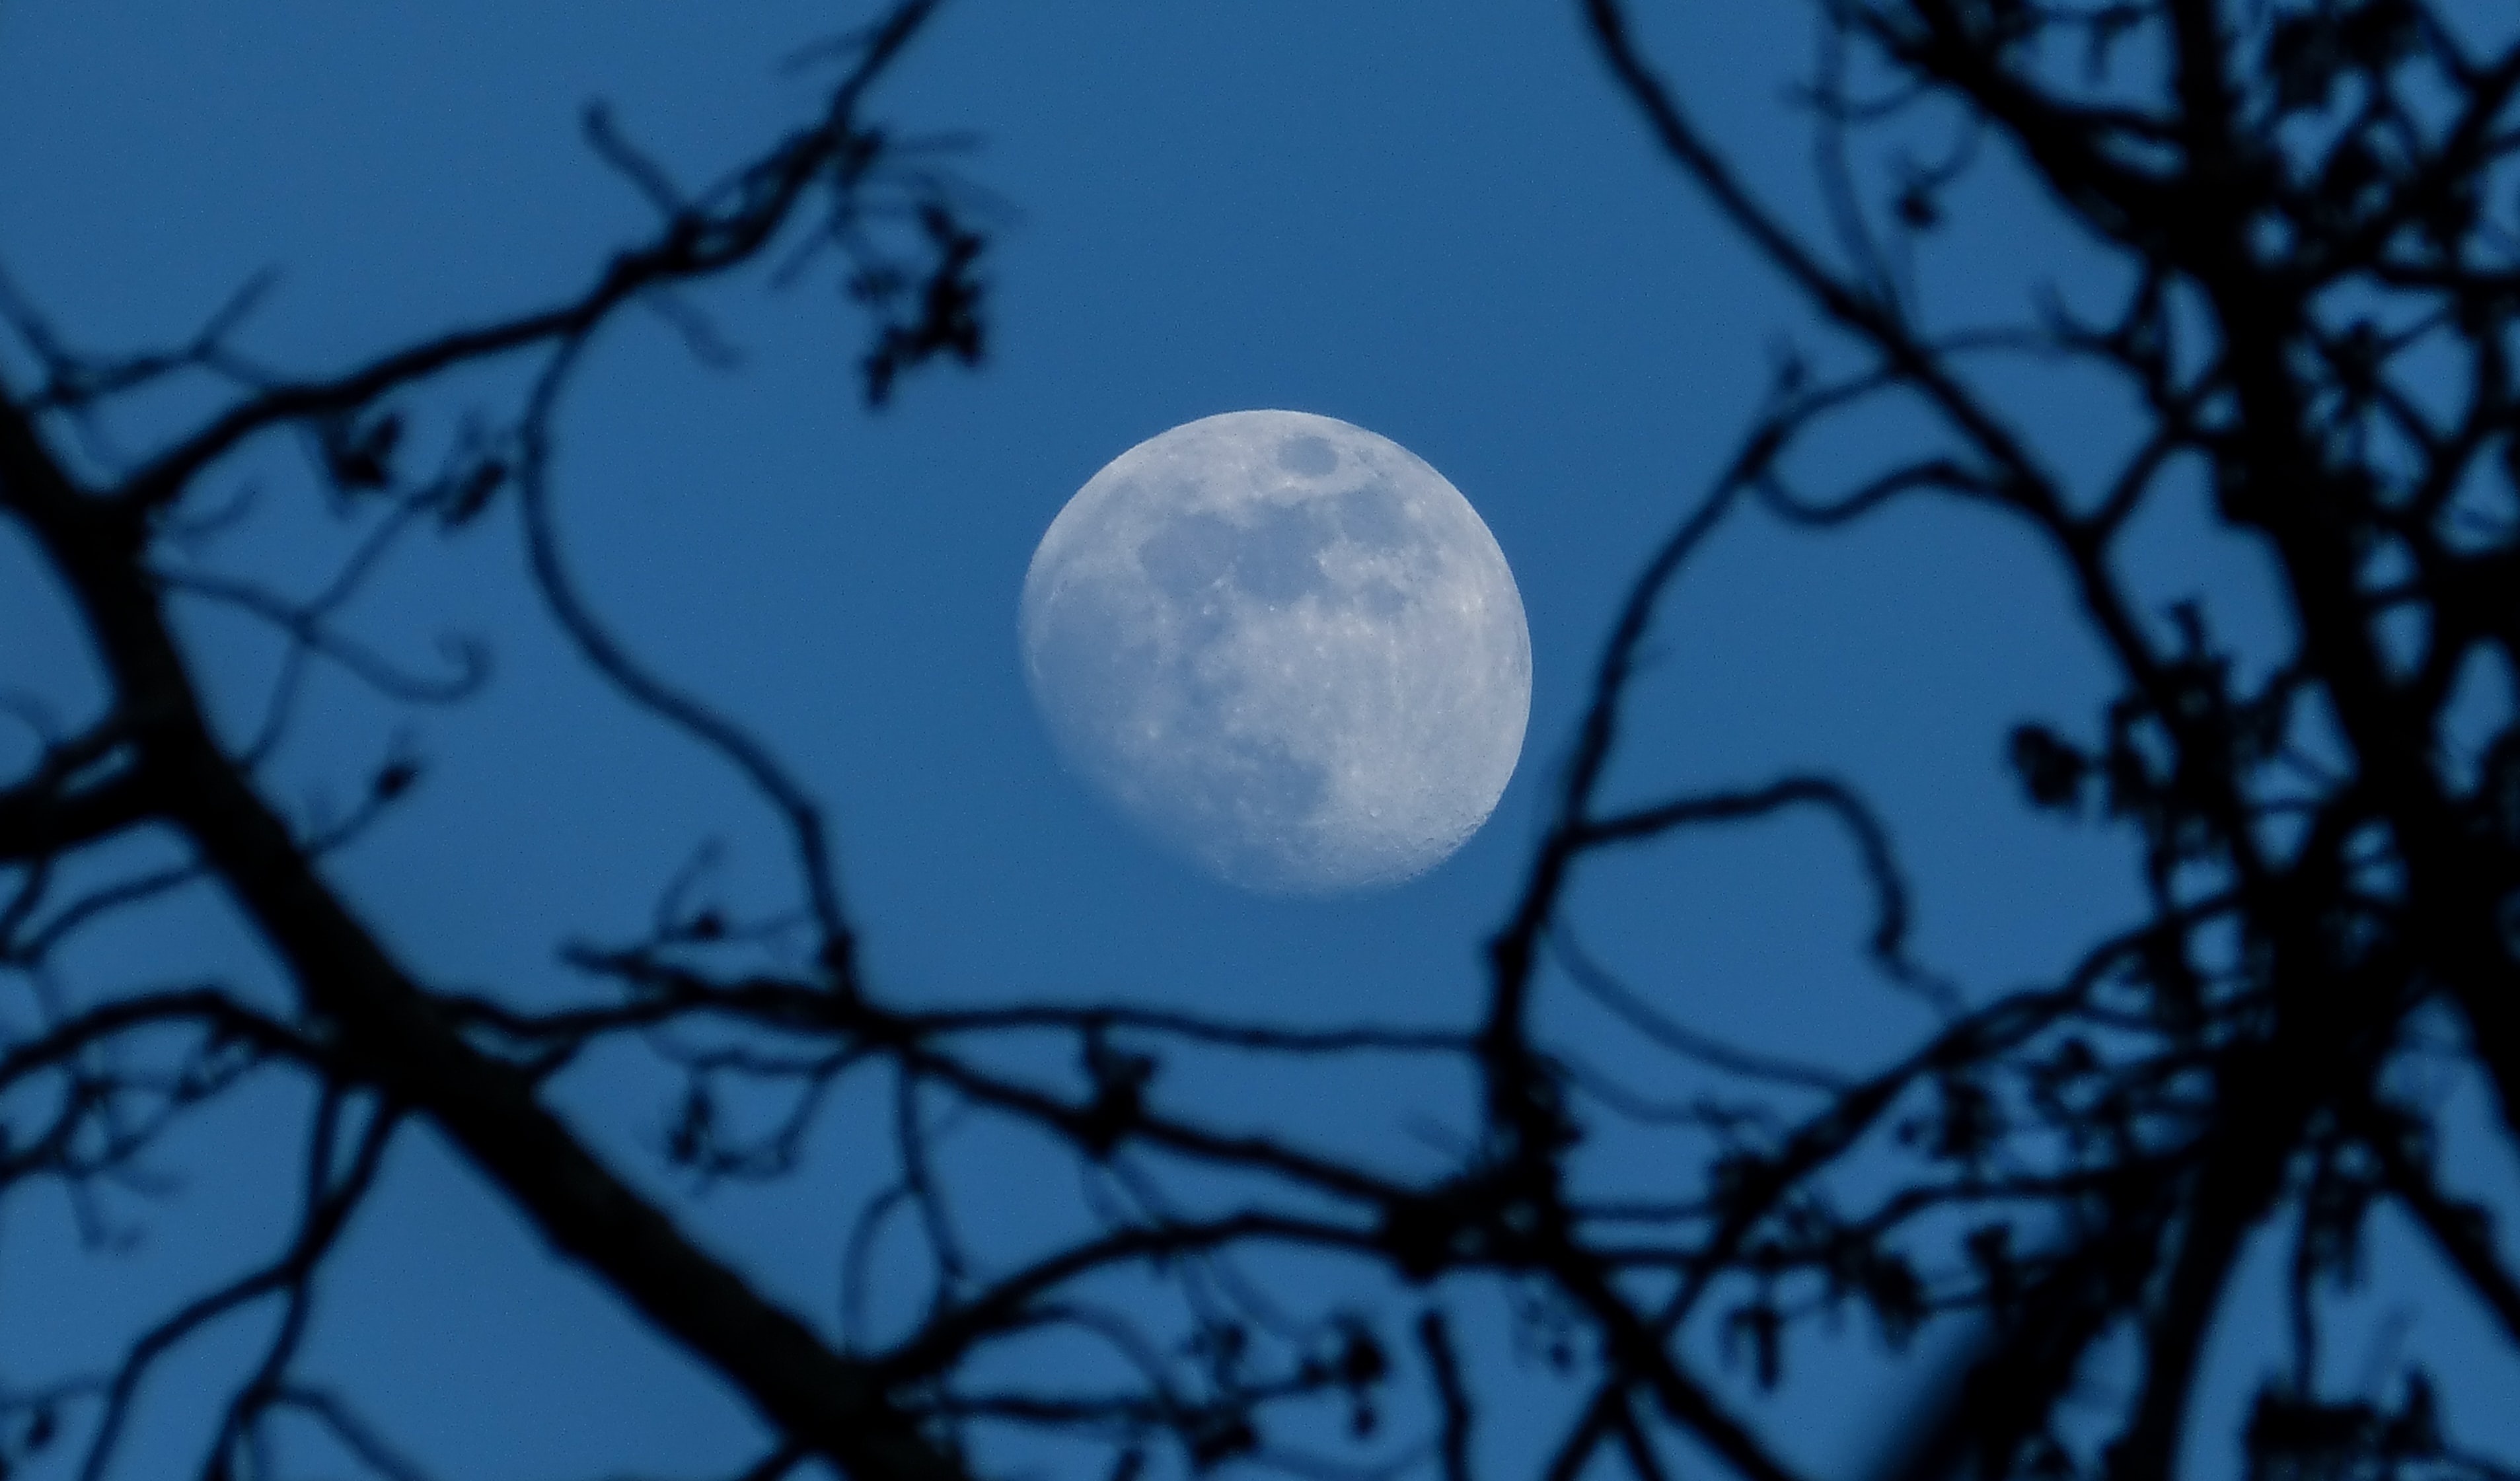 waxing gibbous moon seen through withered trees